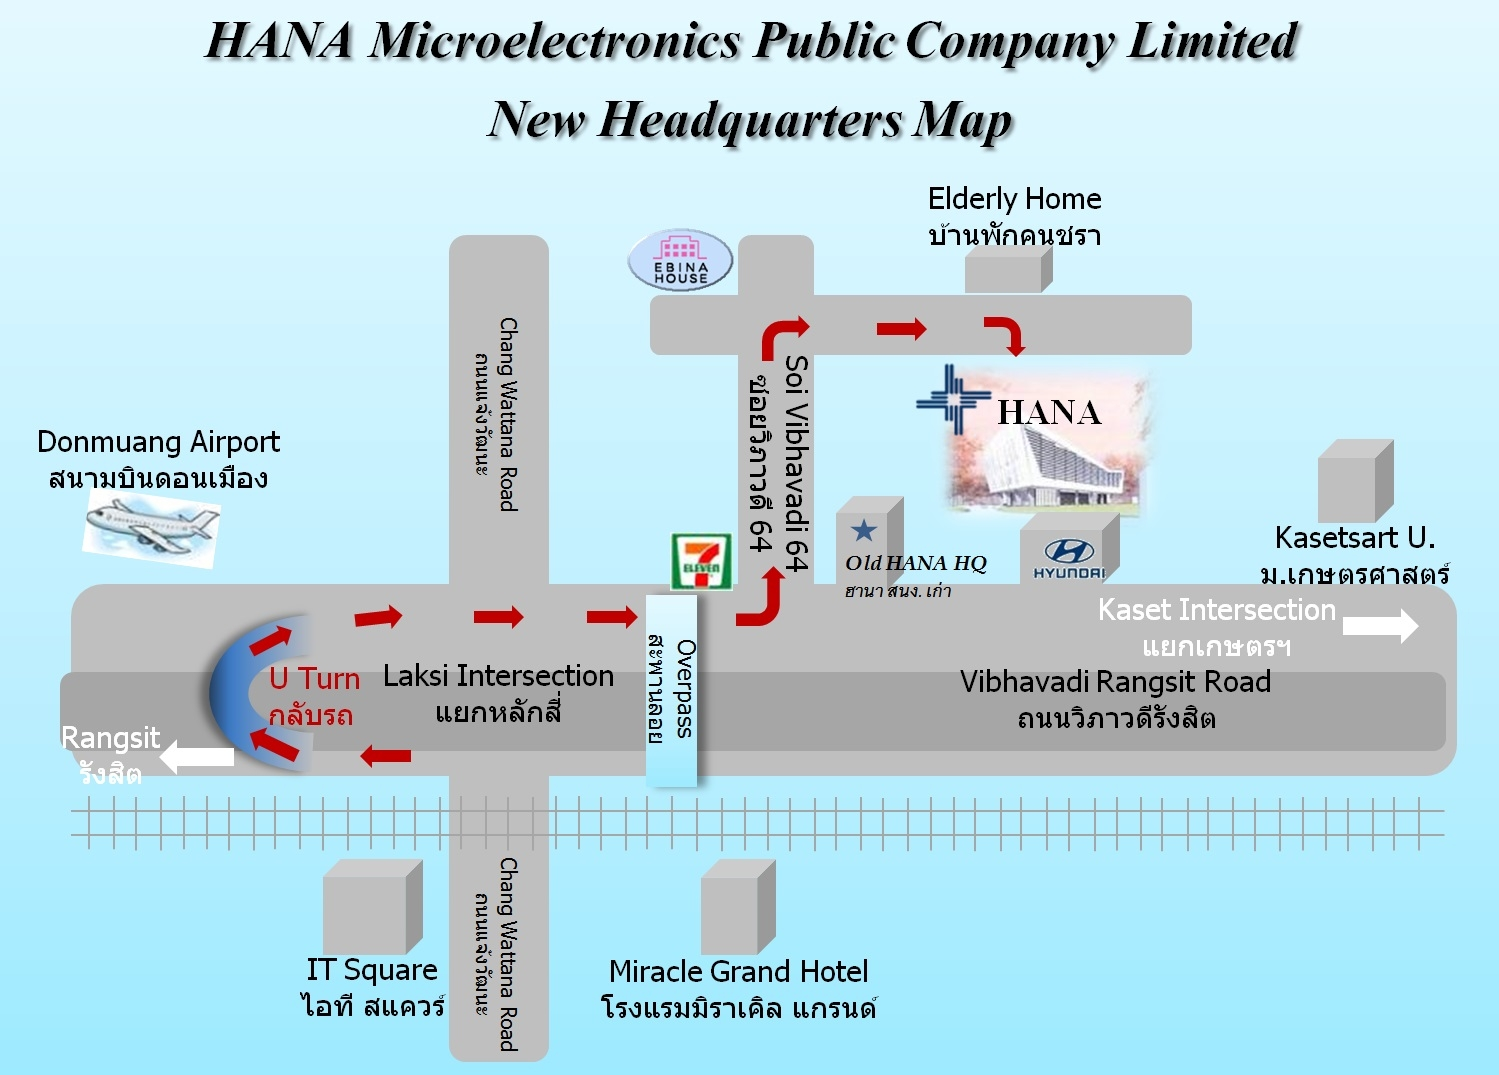 Hana Microelectronics Group Content Management